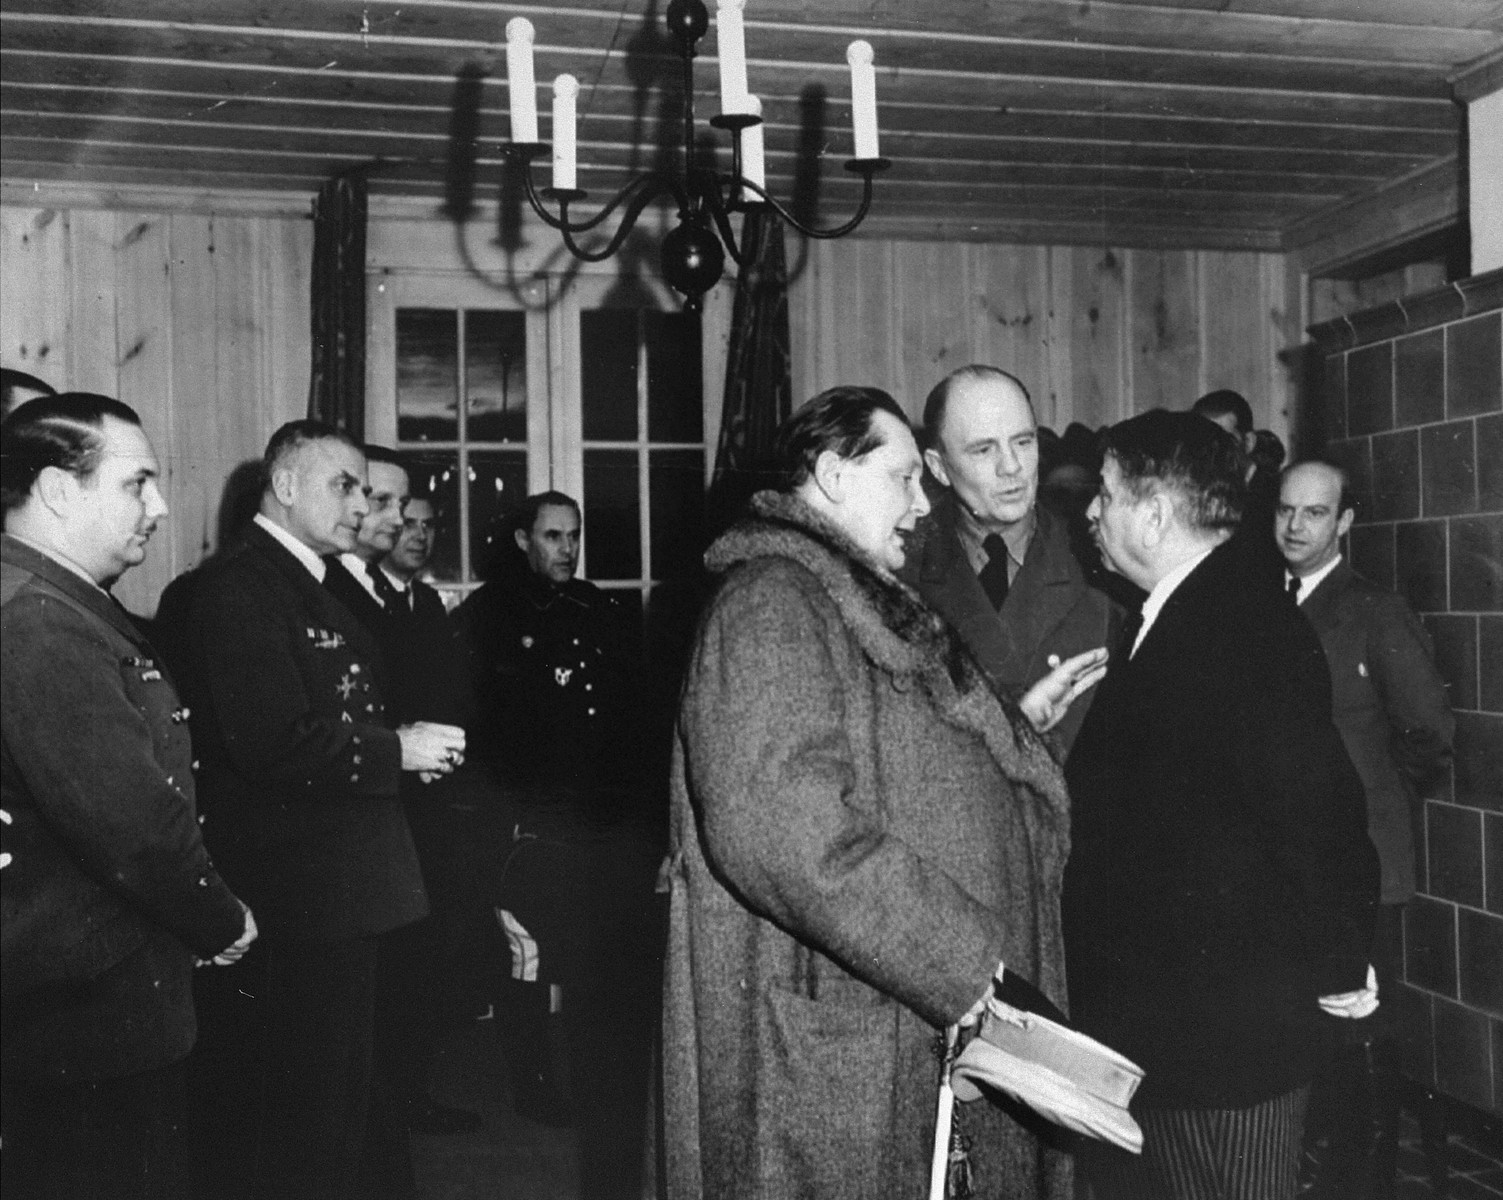 Hermann Goering speaks with Pierre Laval, the head of the Vichy regime, during an official visit.